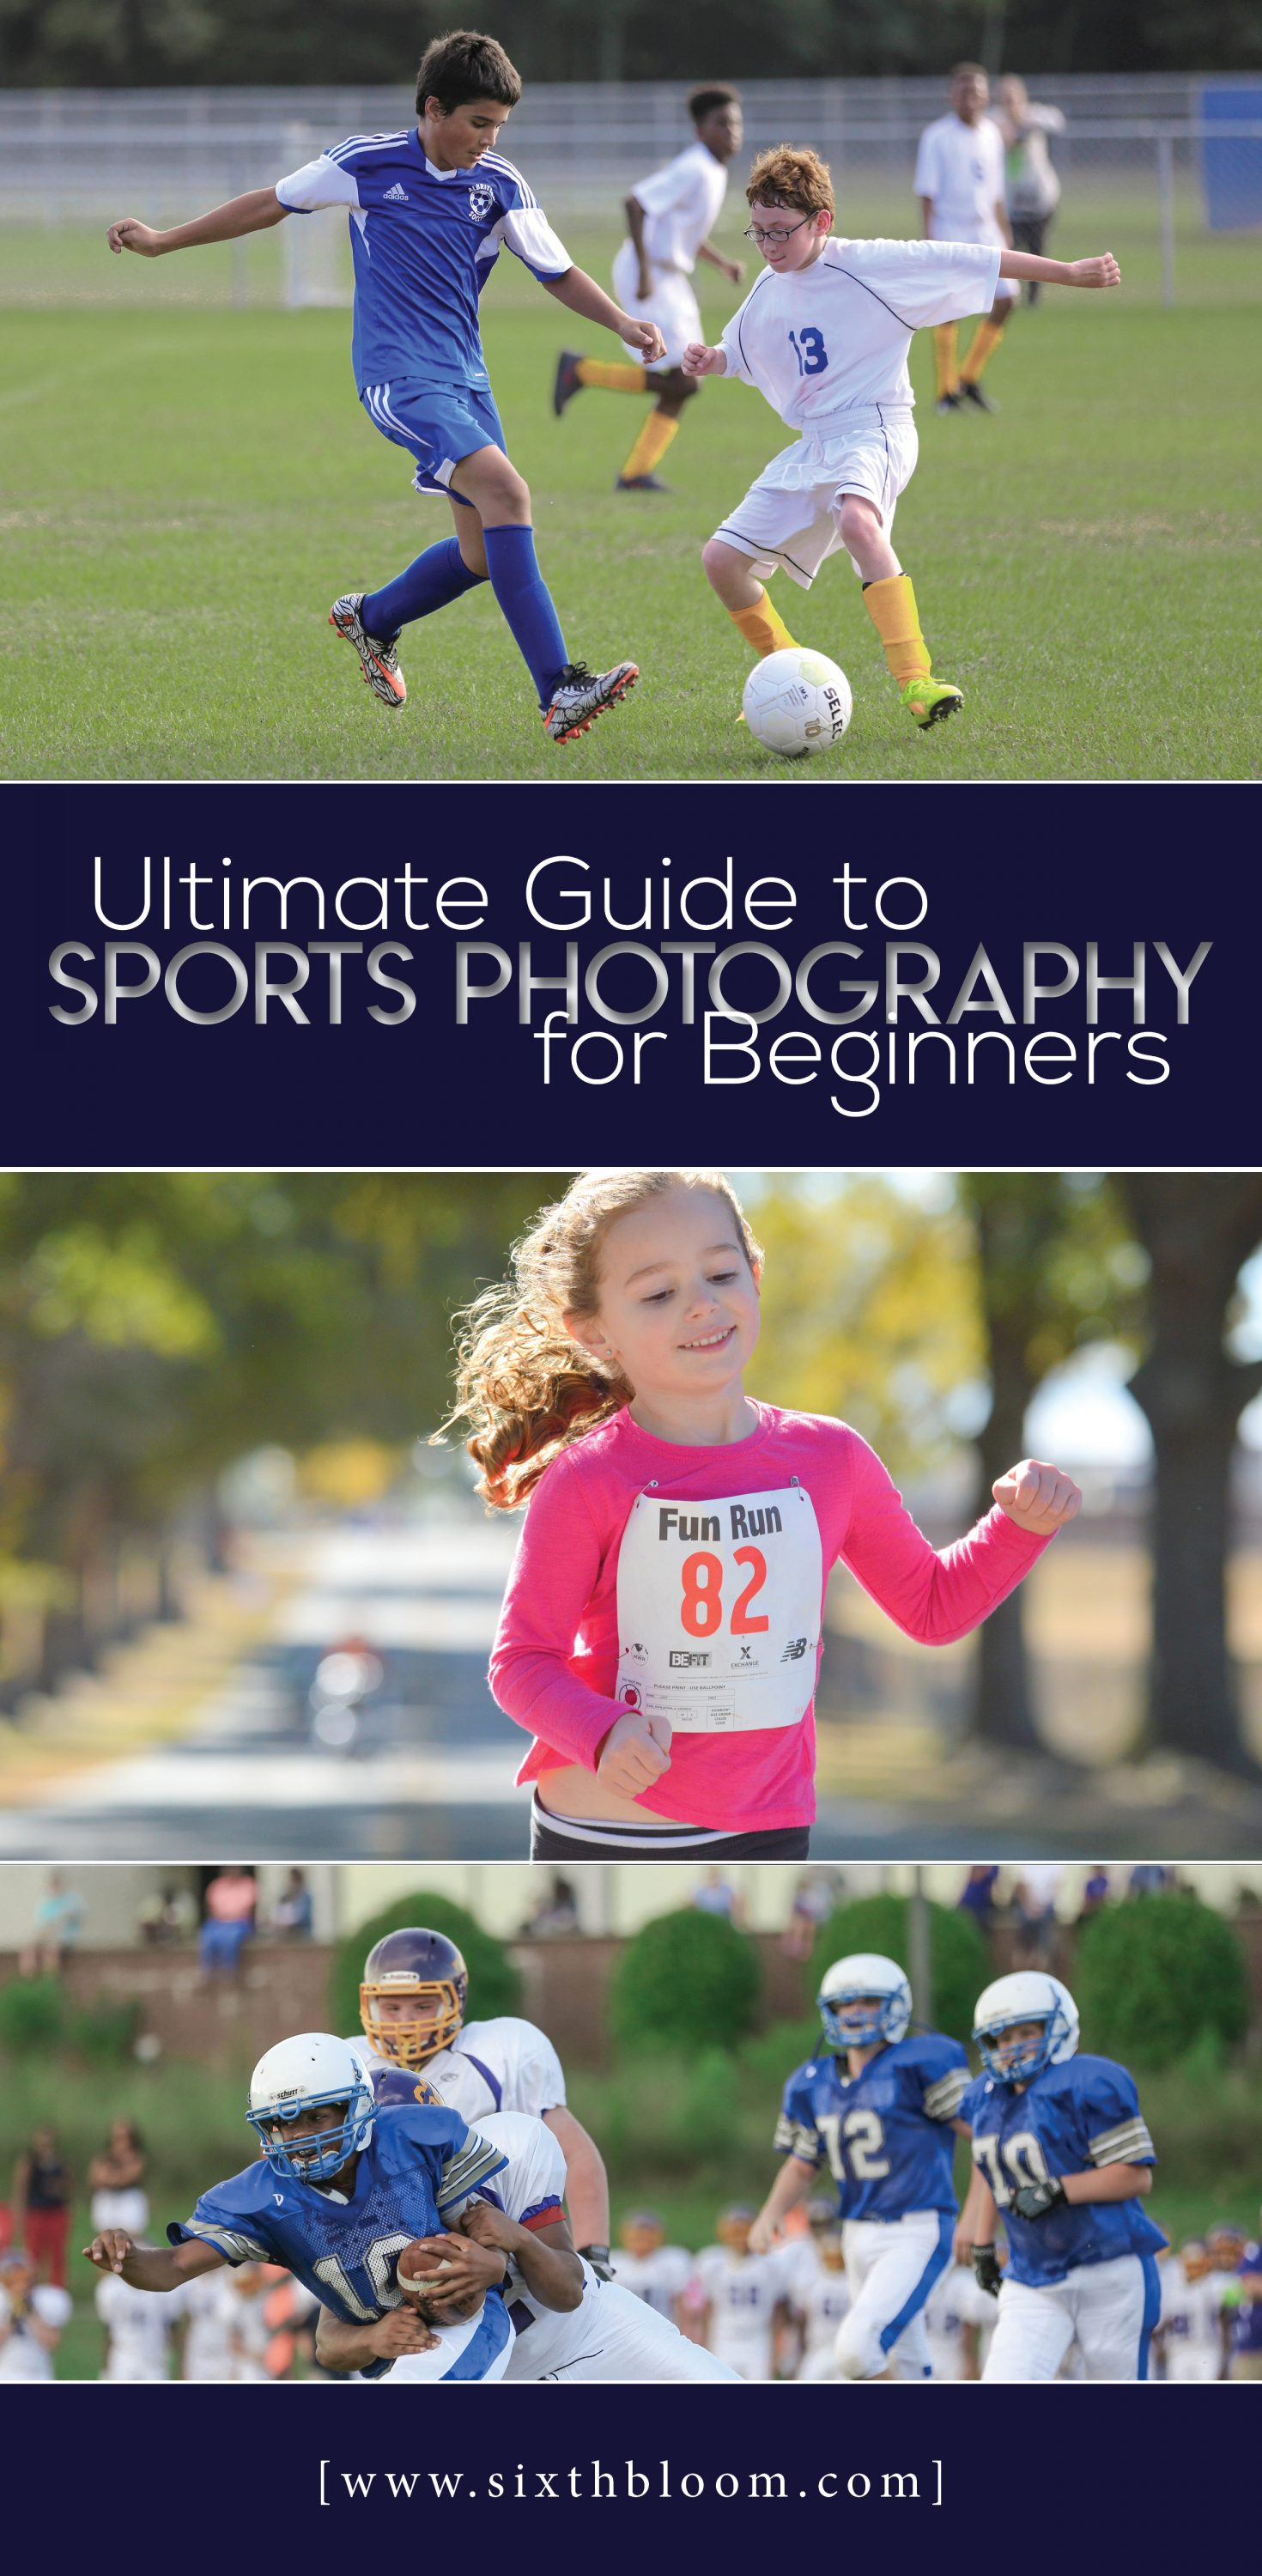 Ultimate Guide to Sports Photography for Beginners